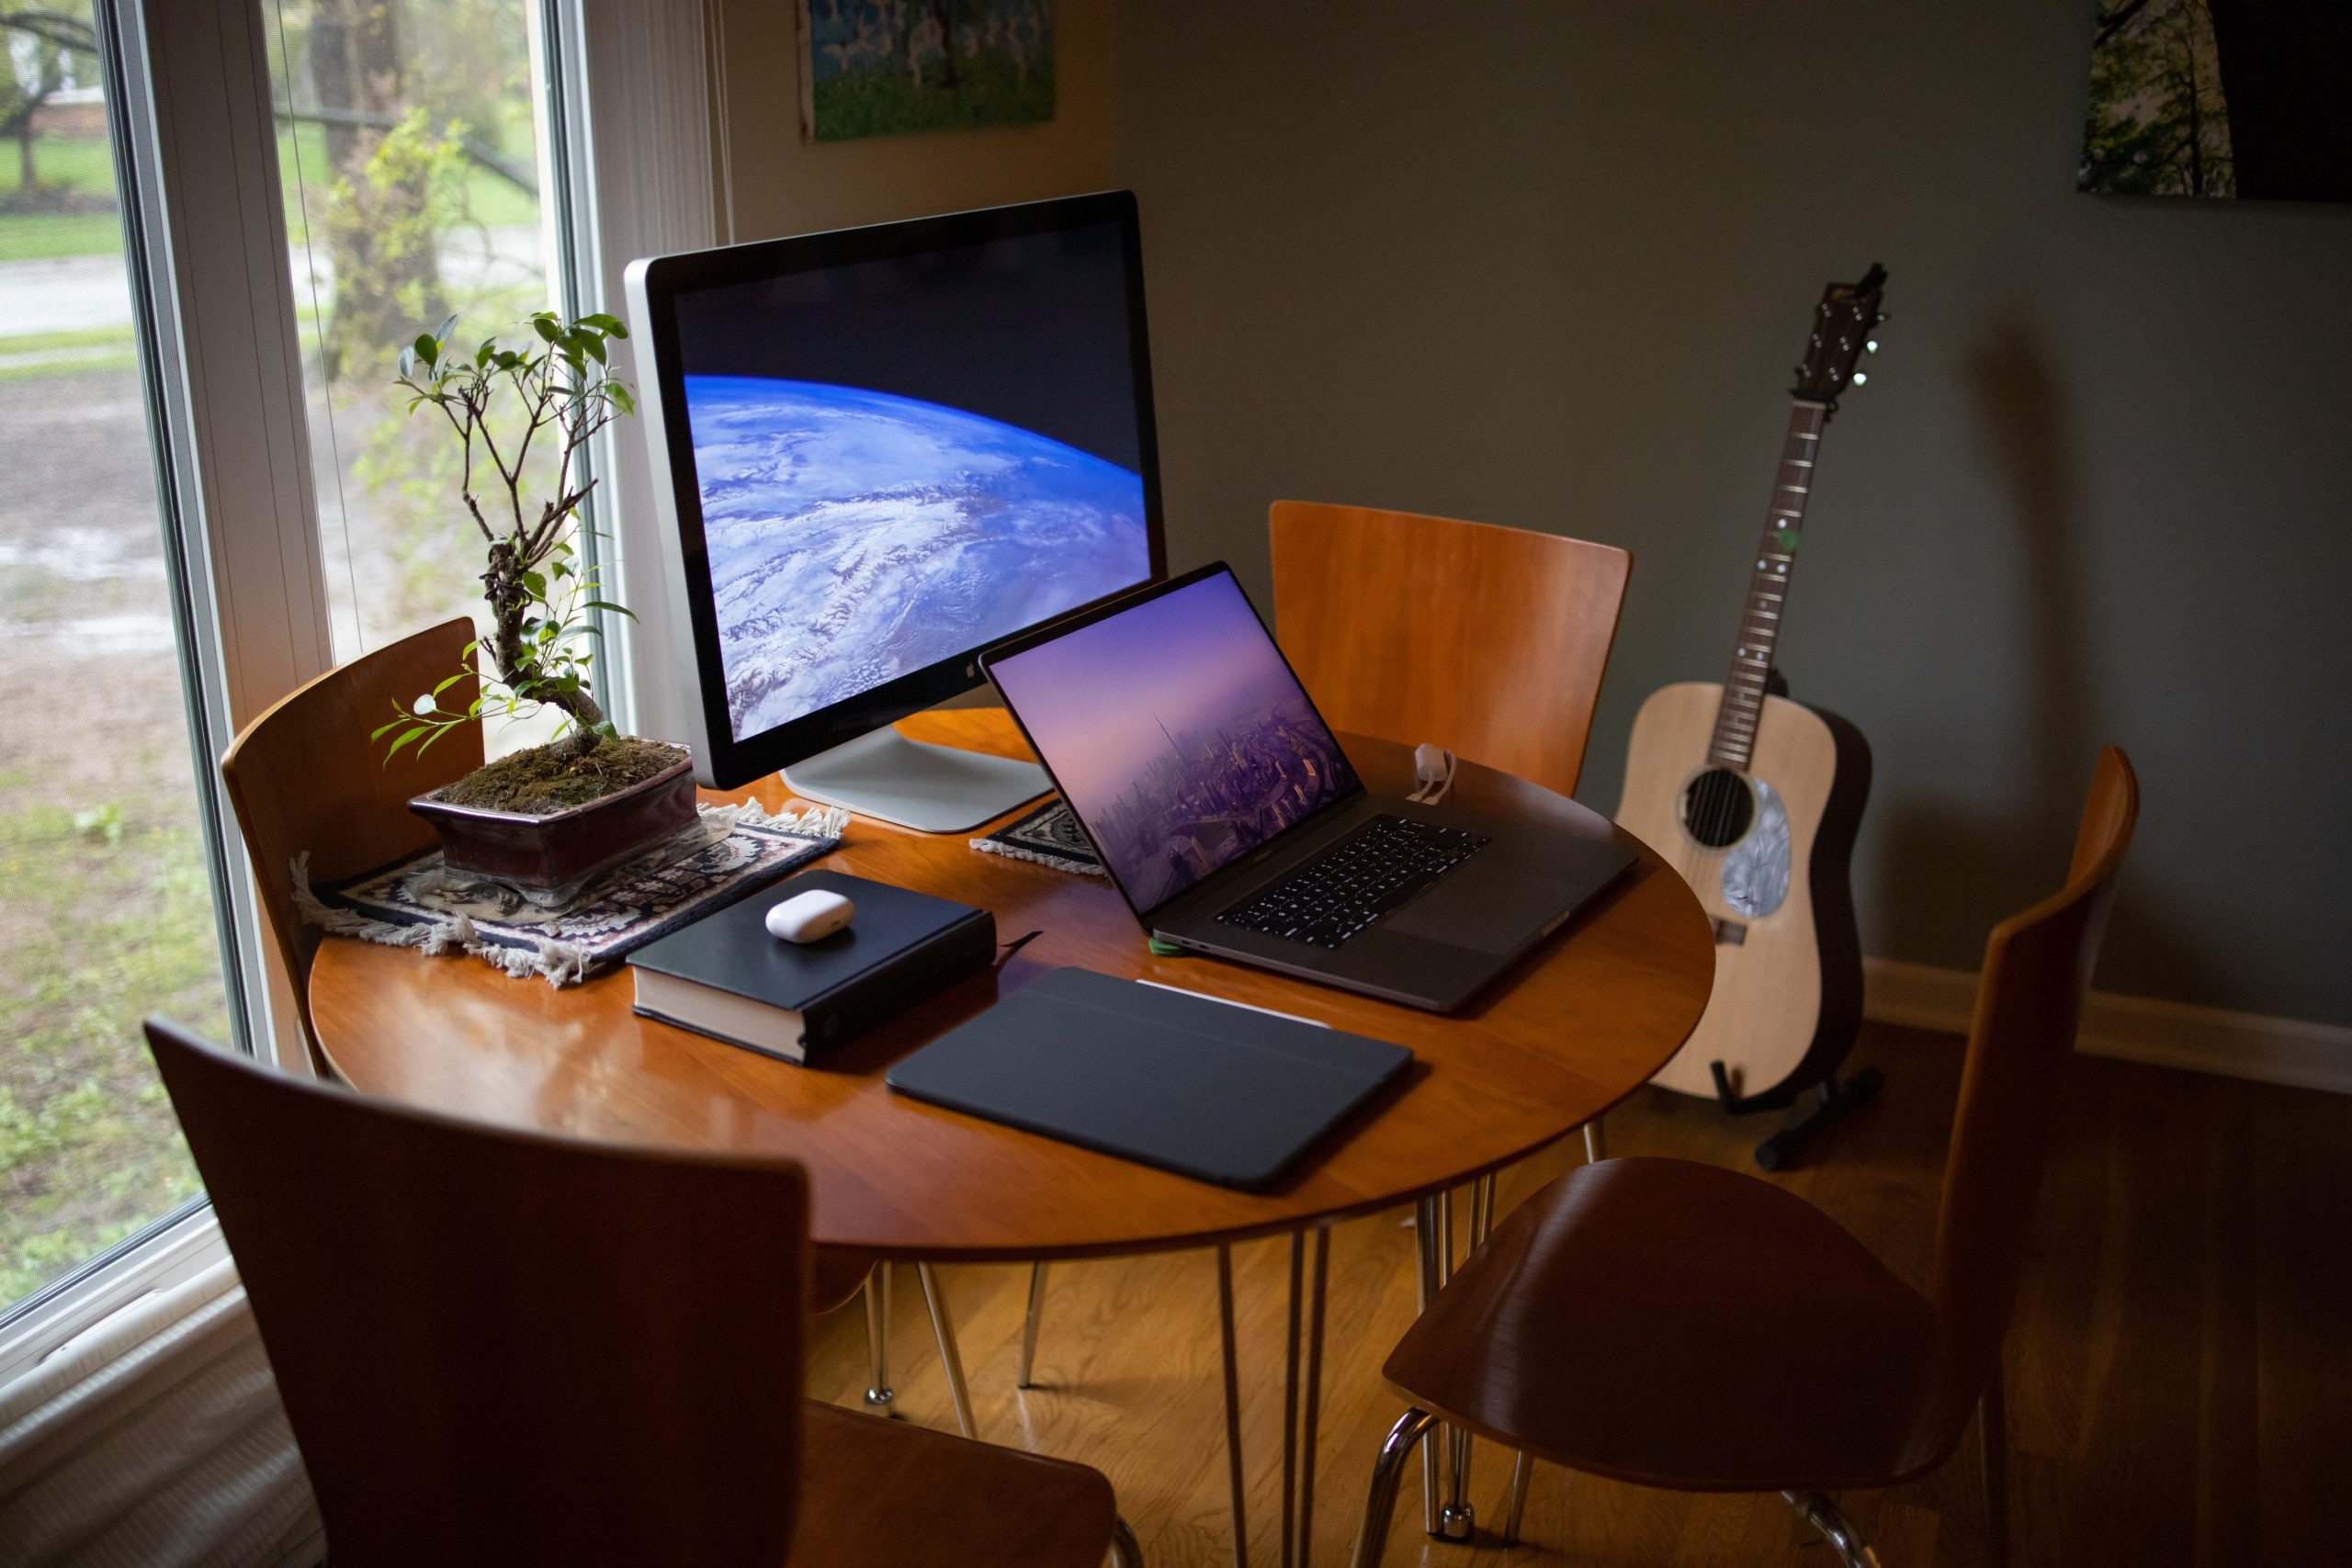 A laptop beside a monitor, book, potted plant and tablet